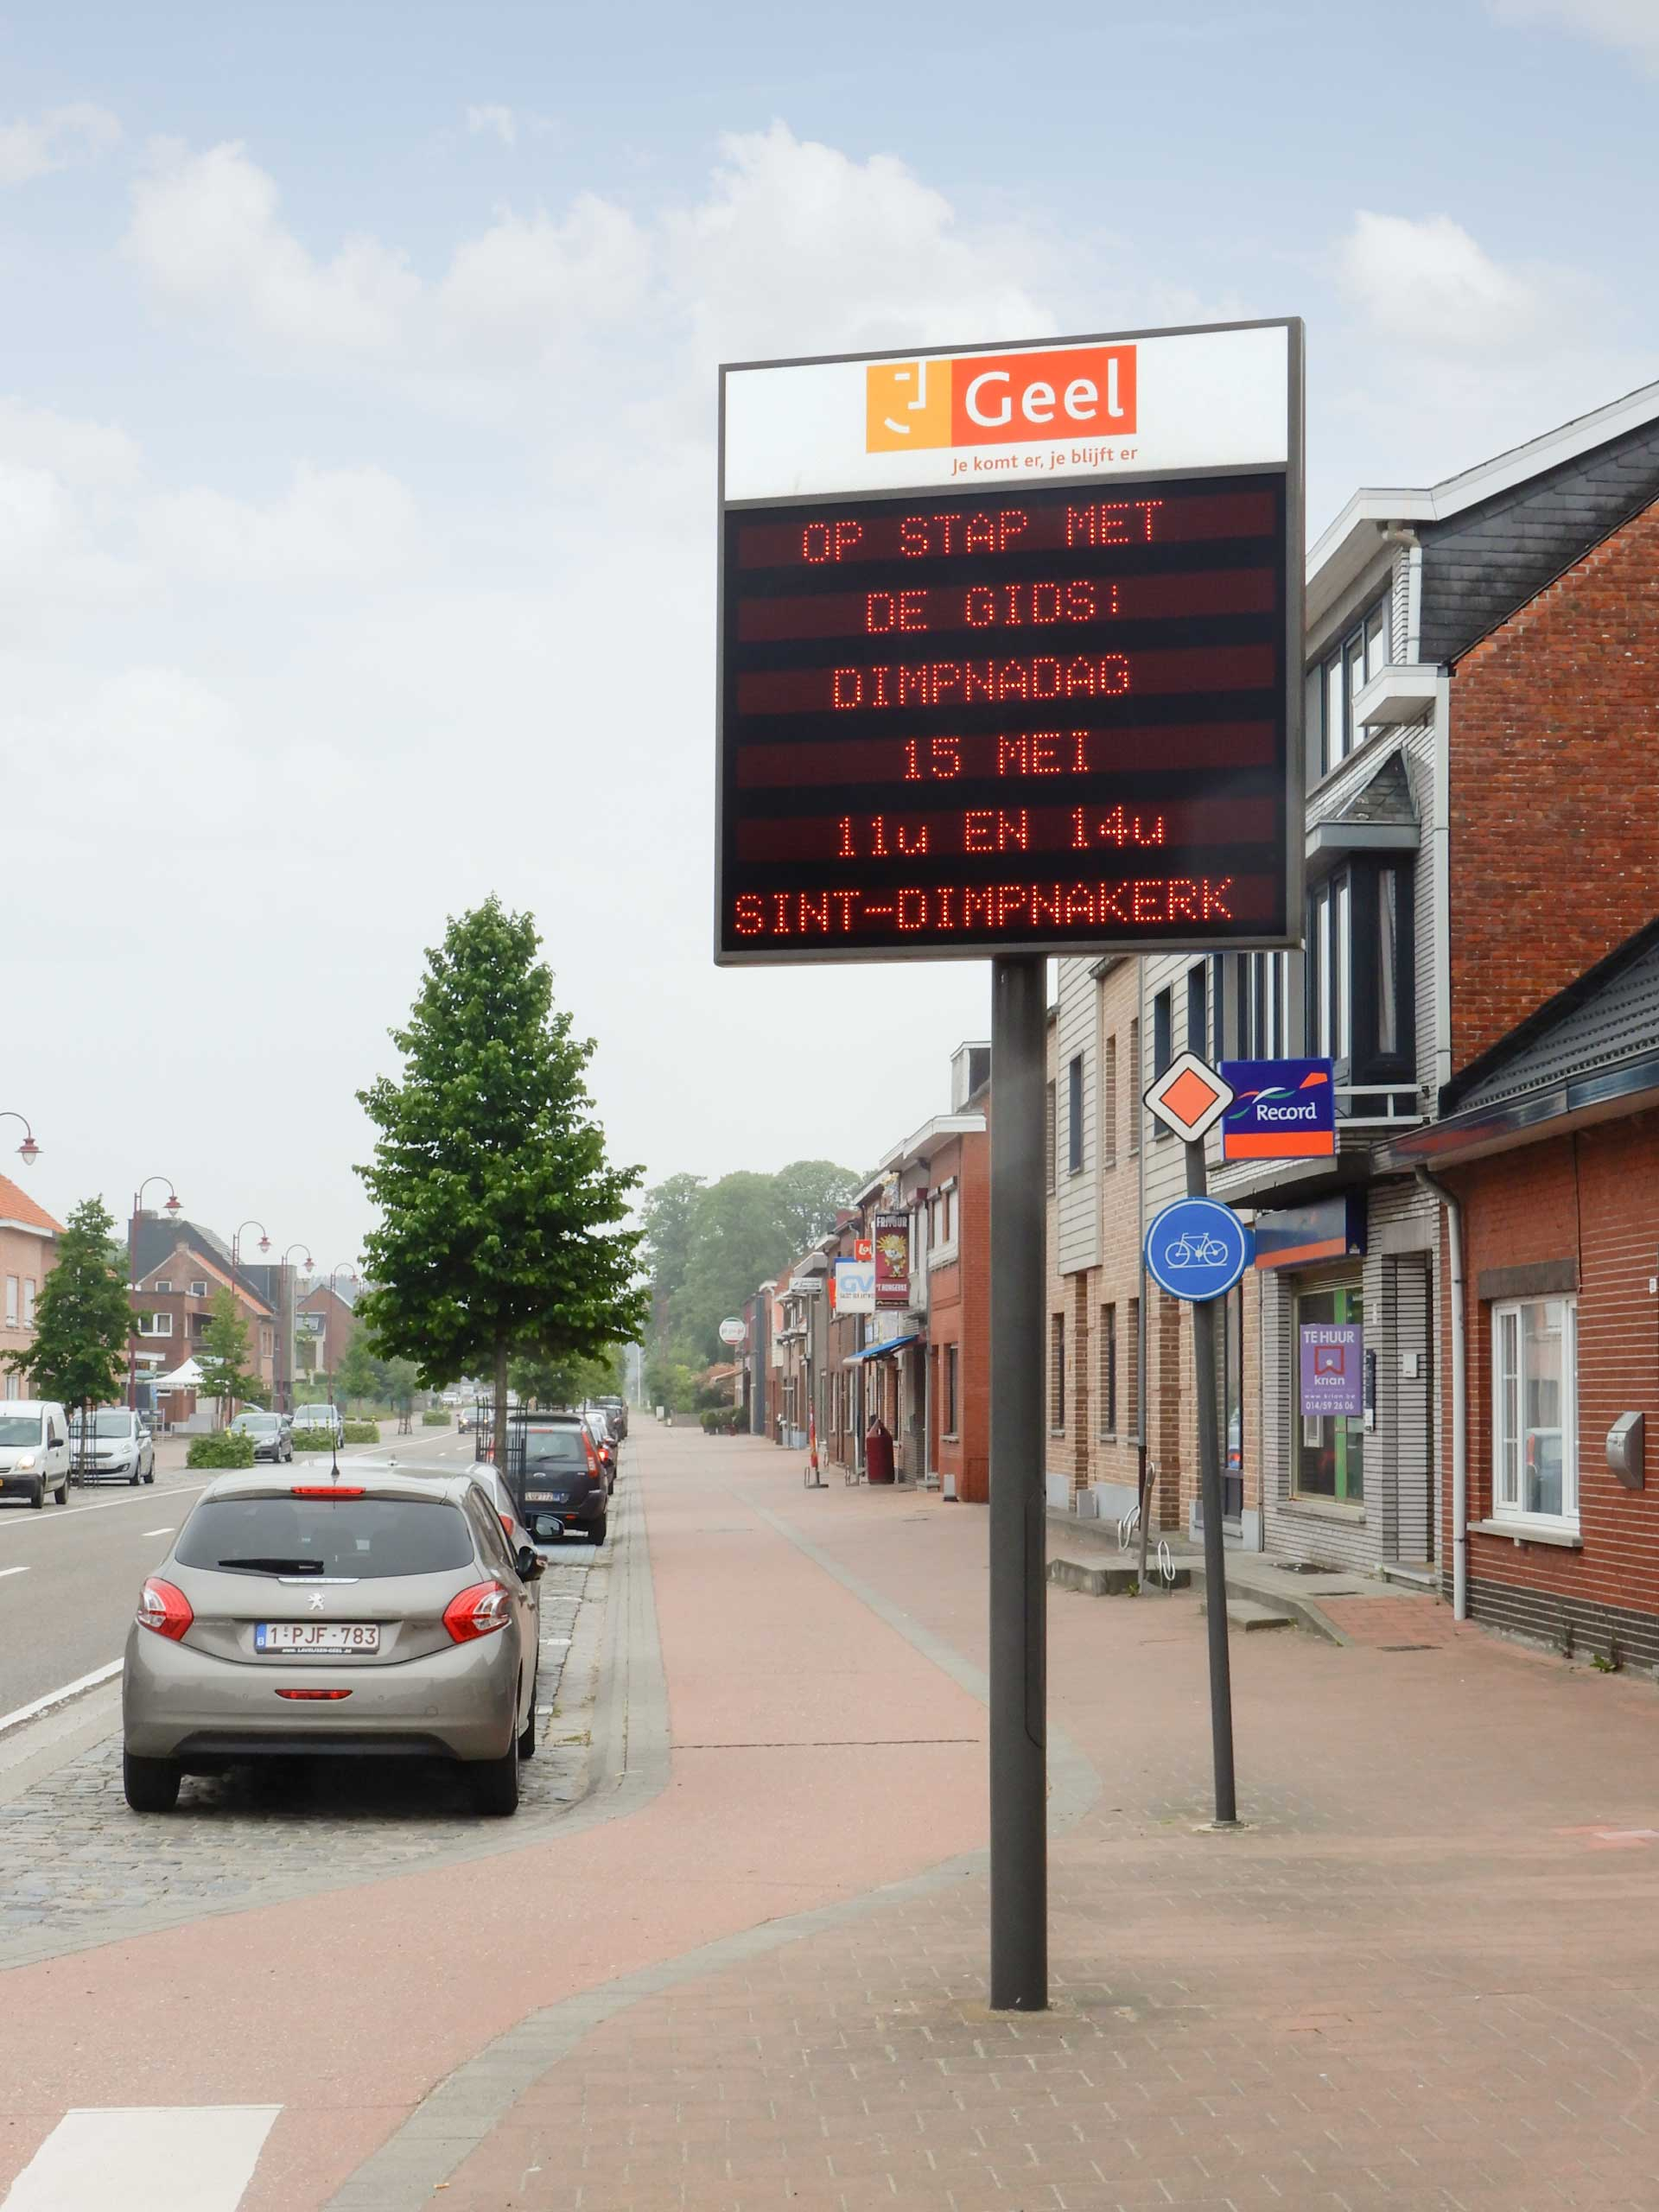 City of Geel